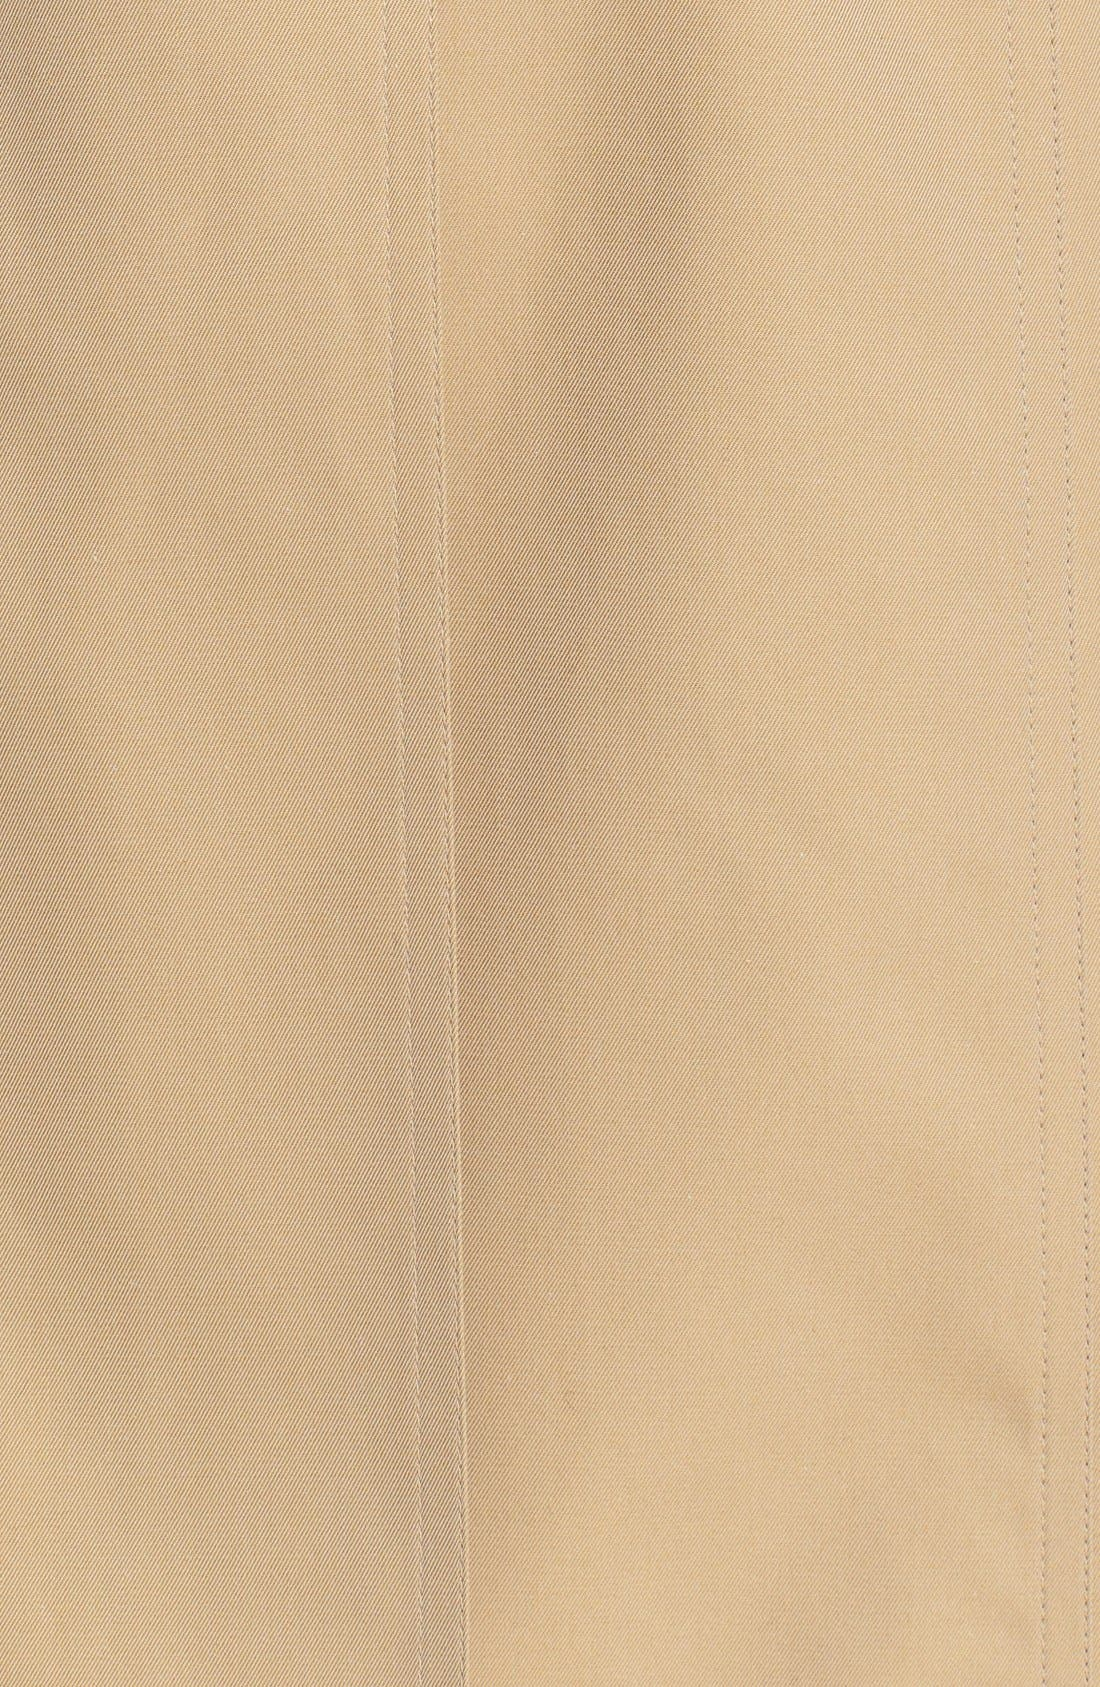 BURBERRY,                             Redhill Puff Sleeve Cotton Trench,                             Alternate thumbnail 5, color,                             250